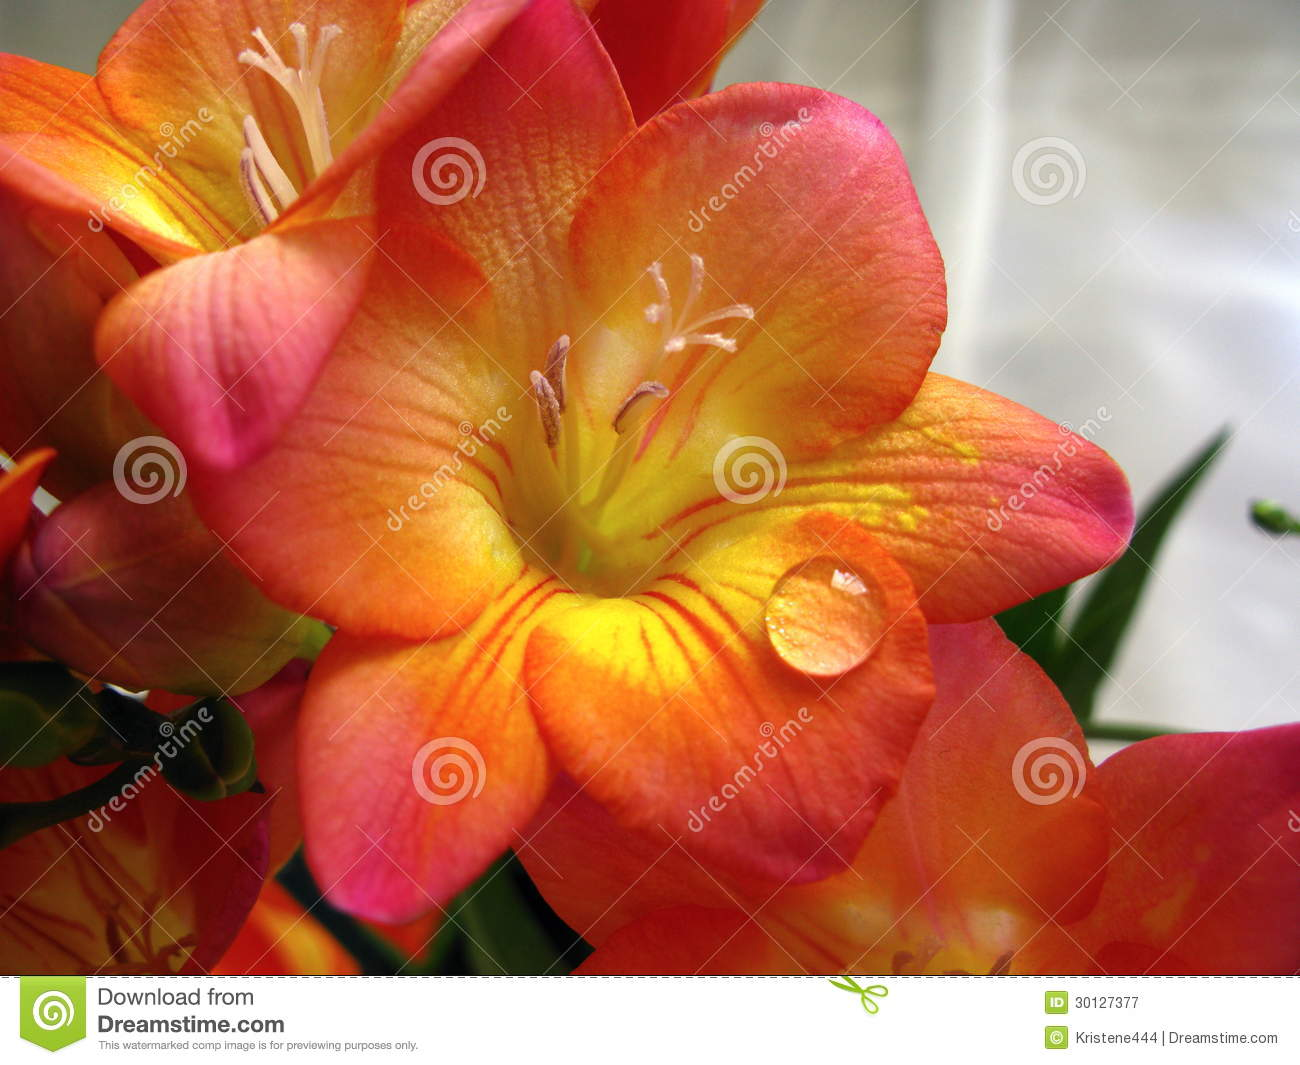 Freesia Flower With A Water Drop Stock Image - Image: 30127377